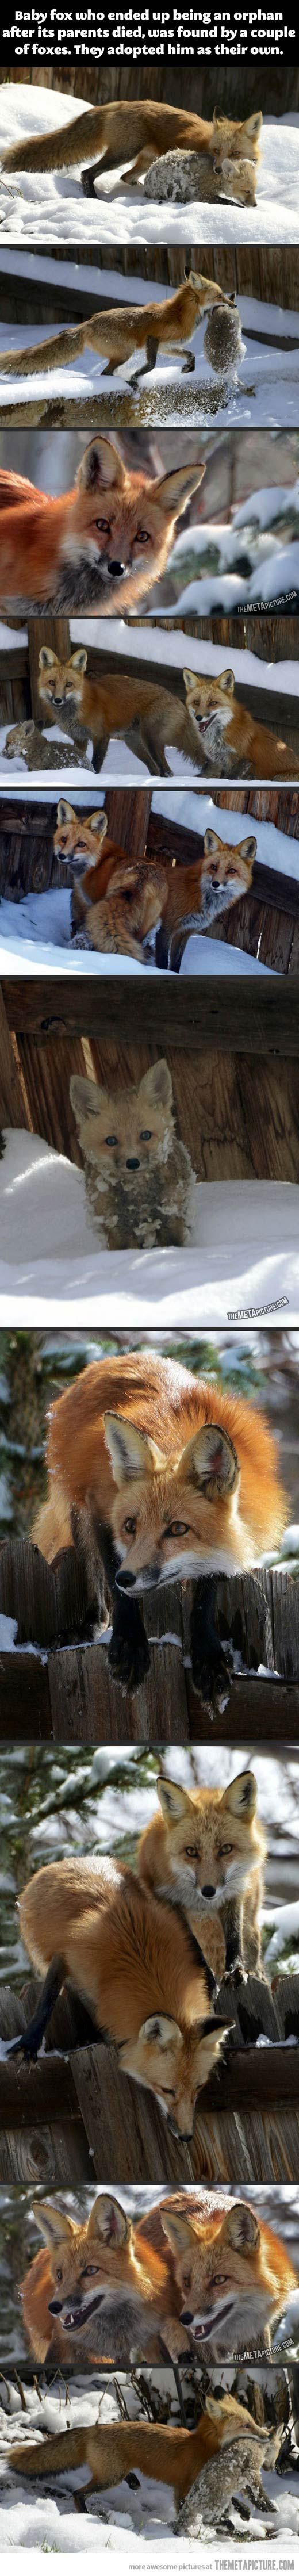 199 best foxing around images on pinterest red fox fox and foxes